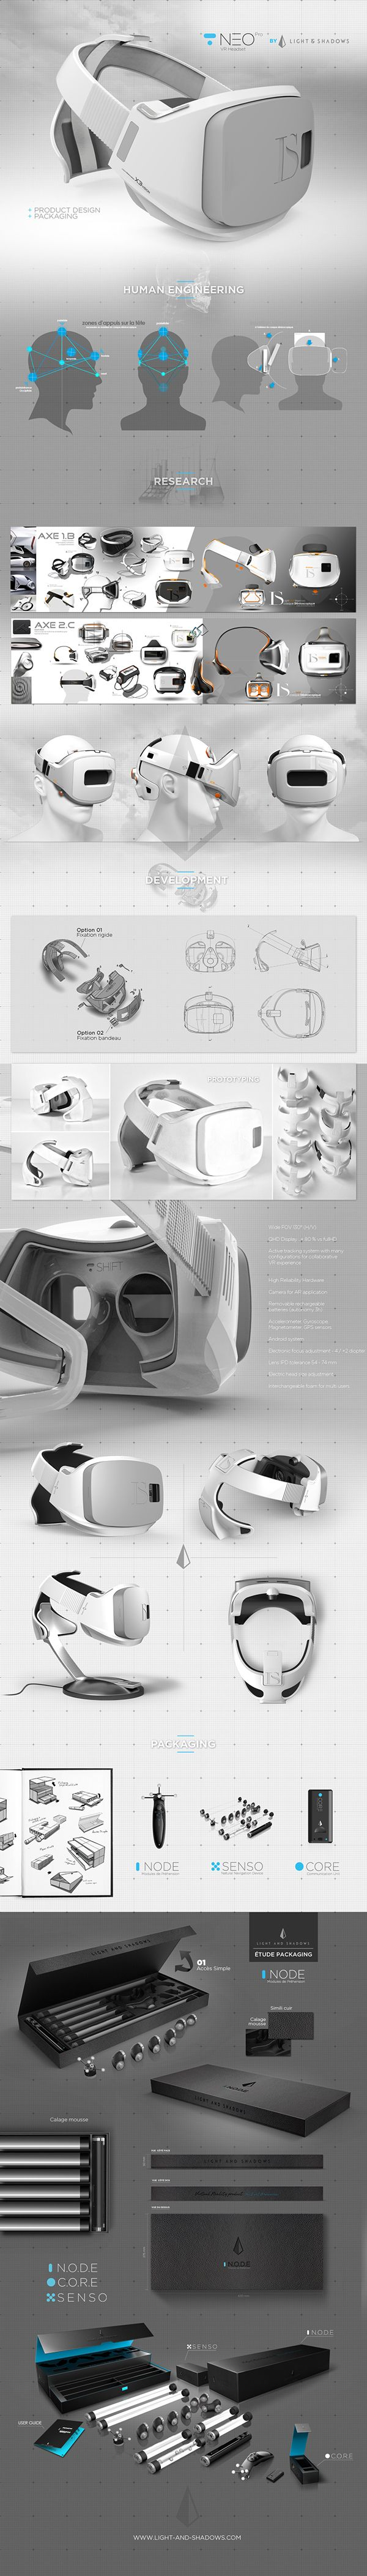 NEOpro by LIGHT & SHADOWS on Behance #Industrial #Design #Rendering